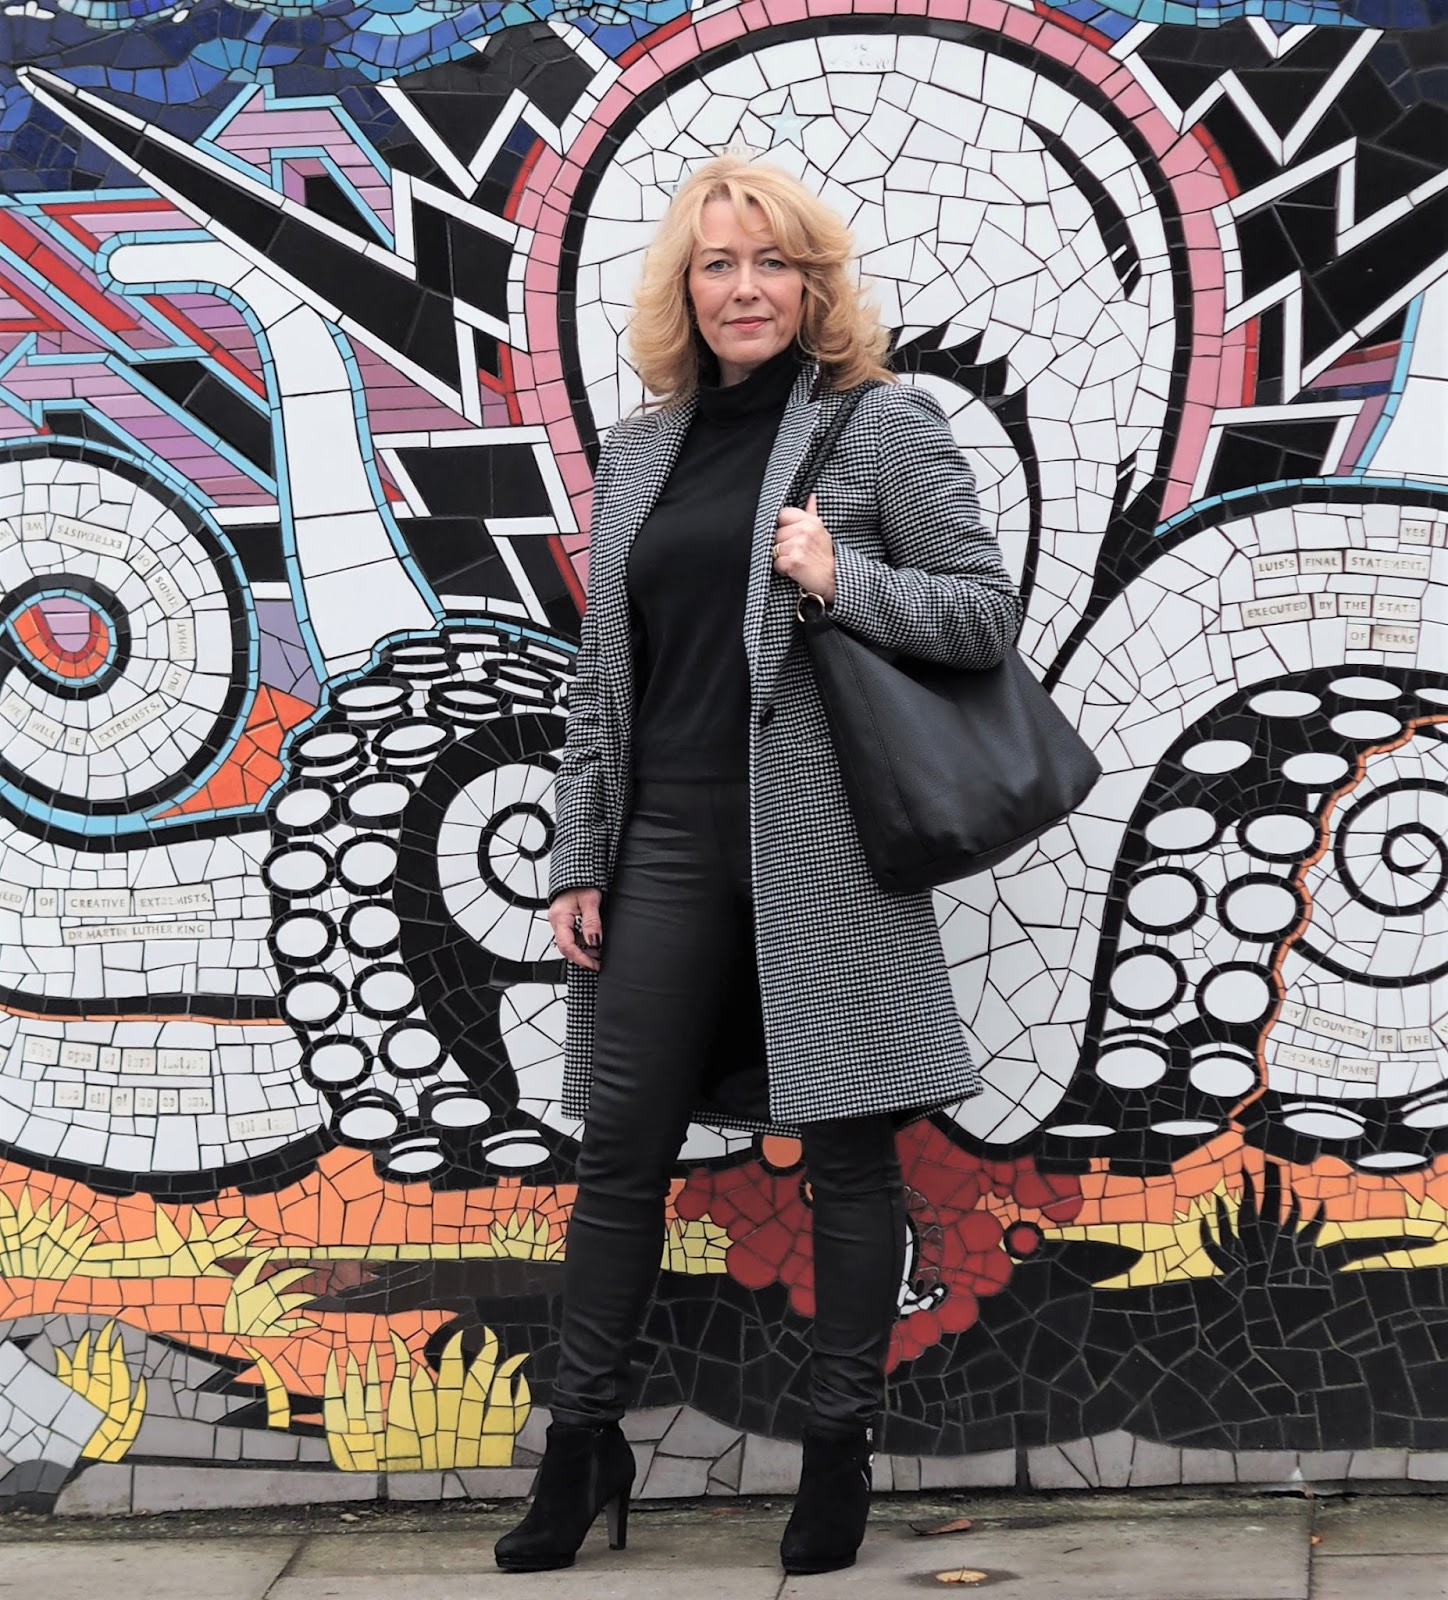 Image showing a 50 plus woman next to a colourful mural wearing black leggings black ankle boots and a tweed coat